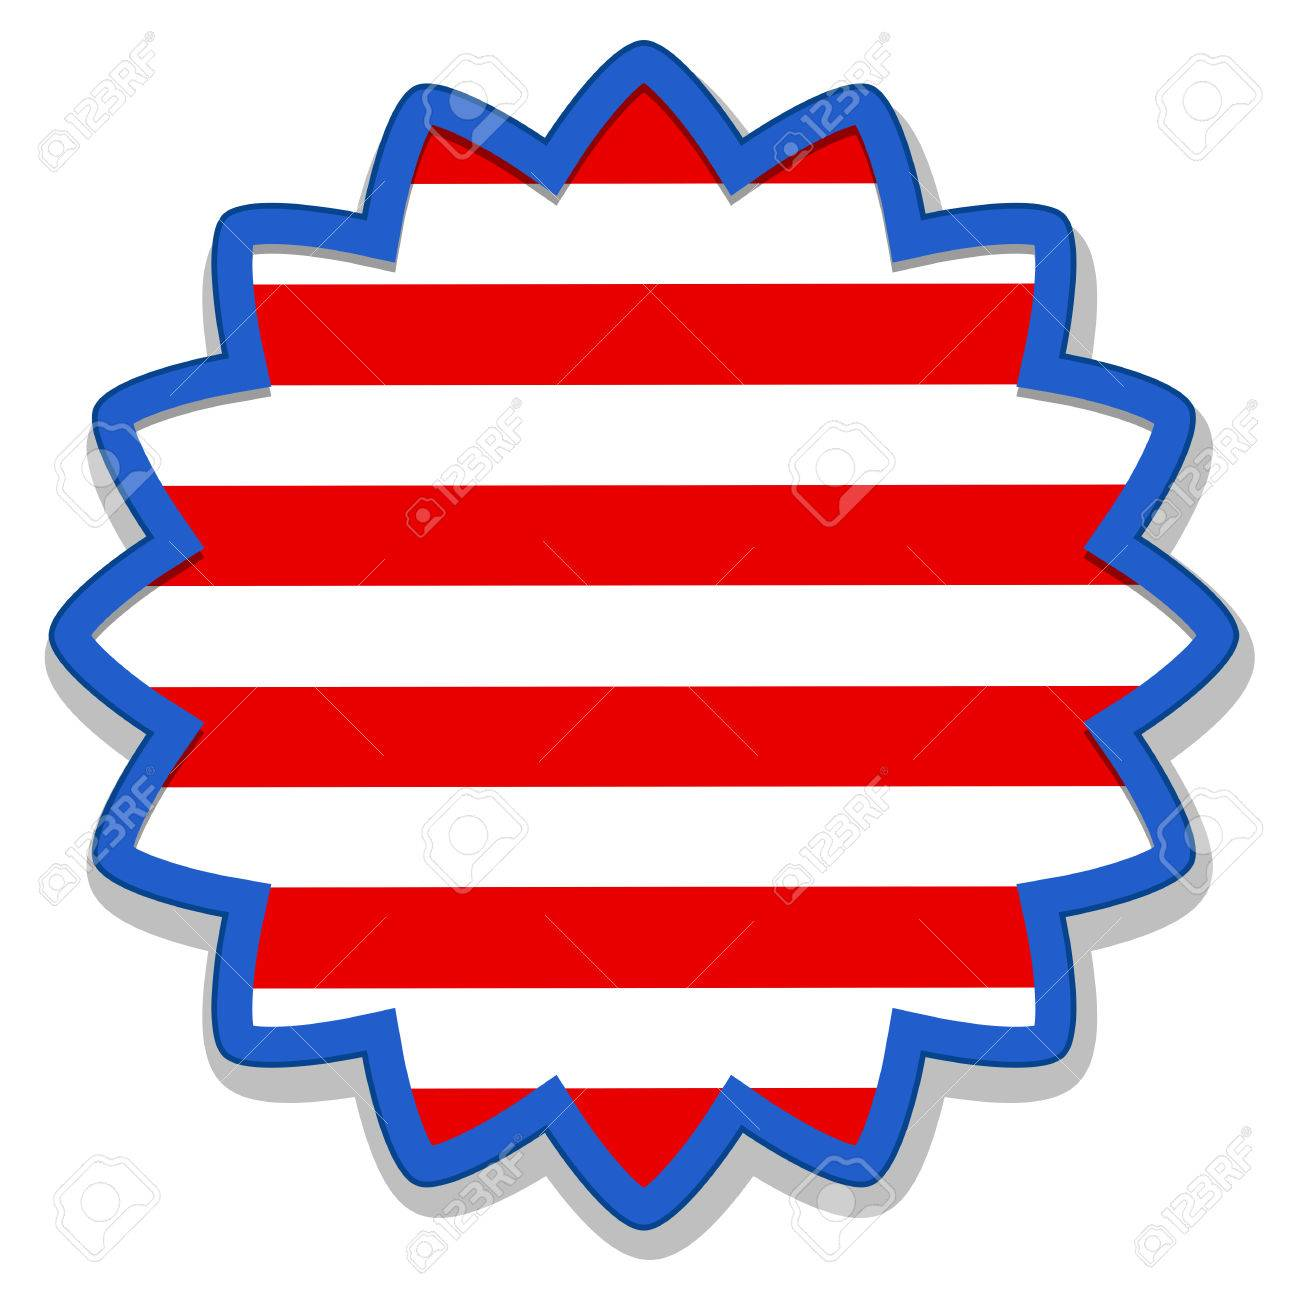 badge sticker - US 4th of July - Independence Day Vector Design Stock Vector - 22318344